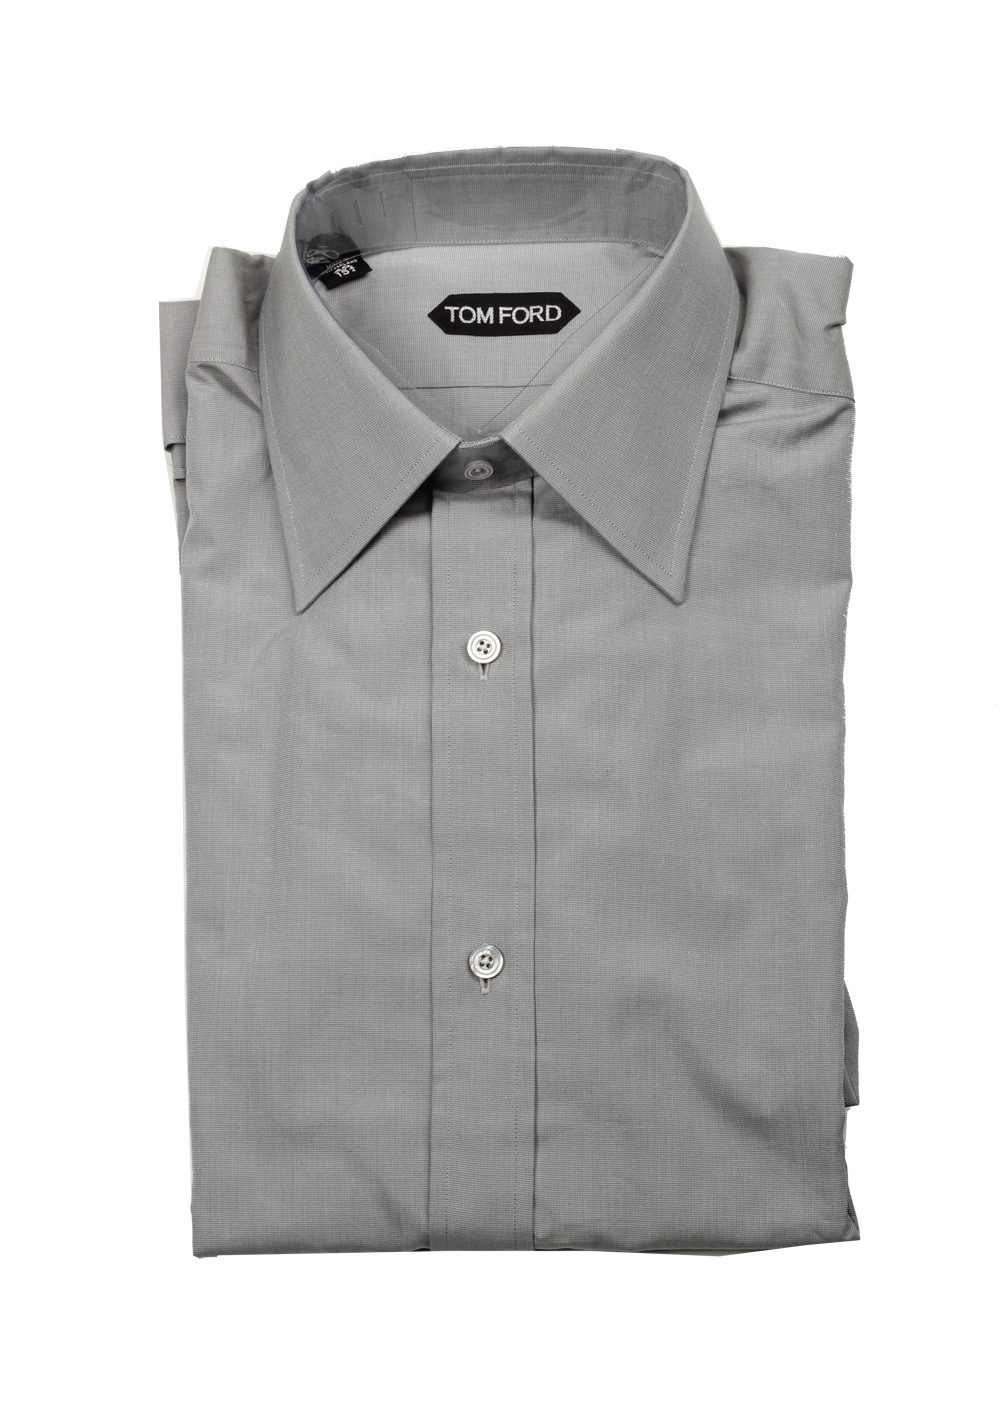 Tom ford solid gray dress shirt size 40 15 75 u s for Size 15 dress shirt